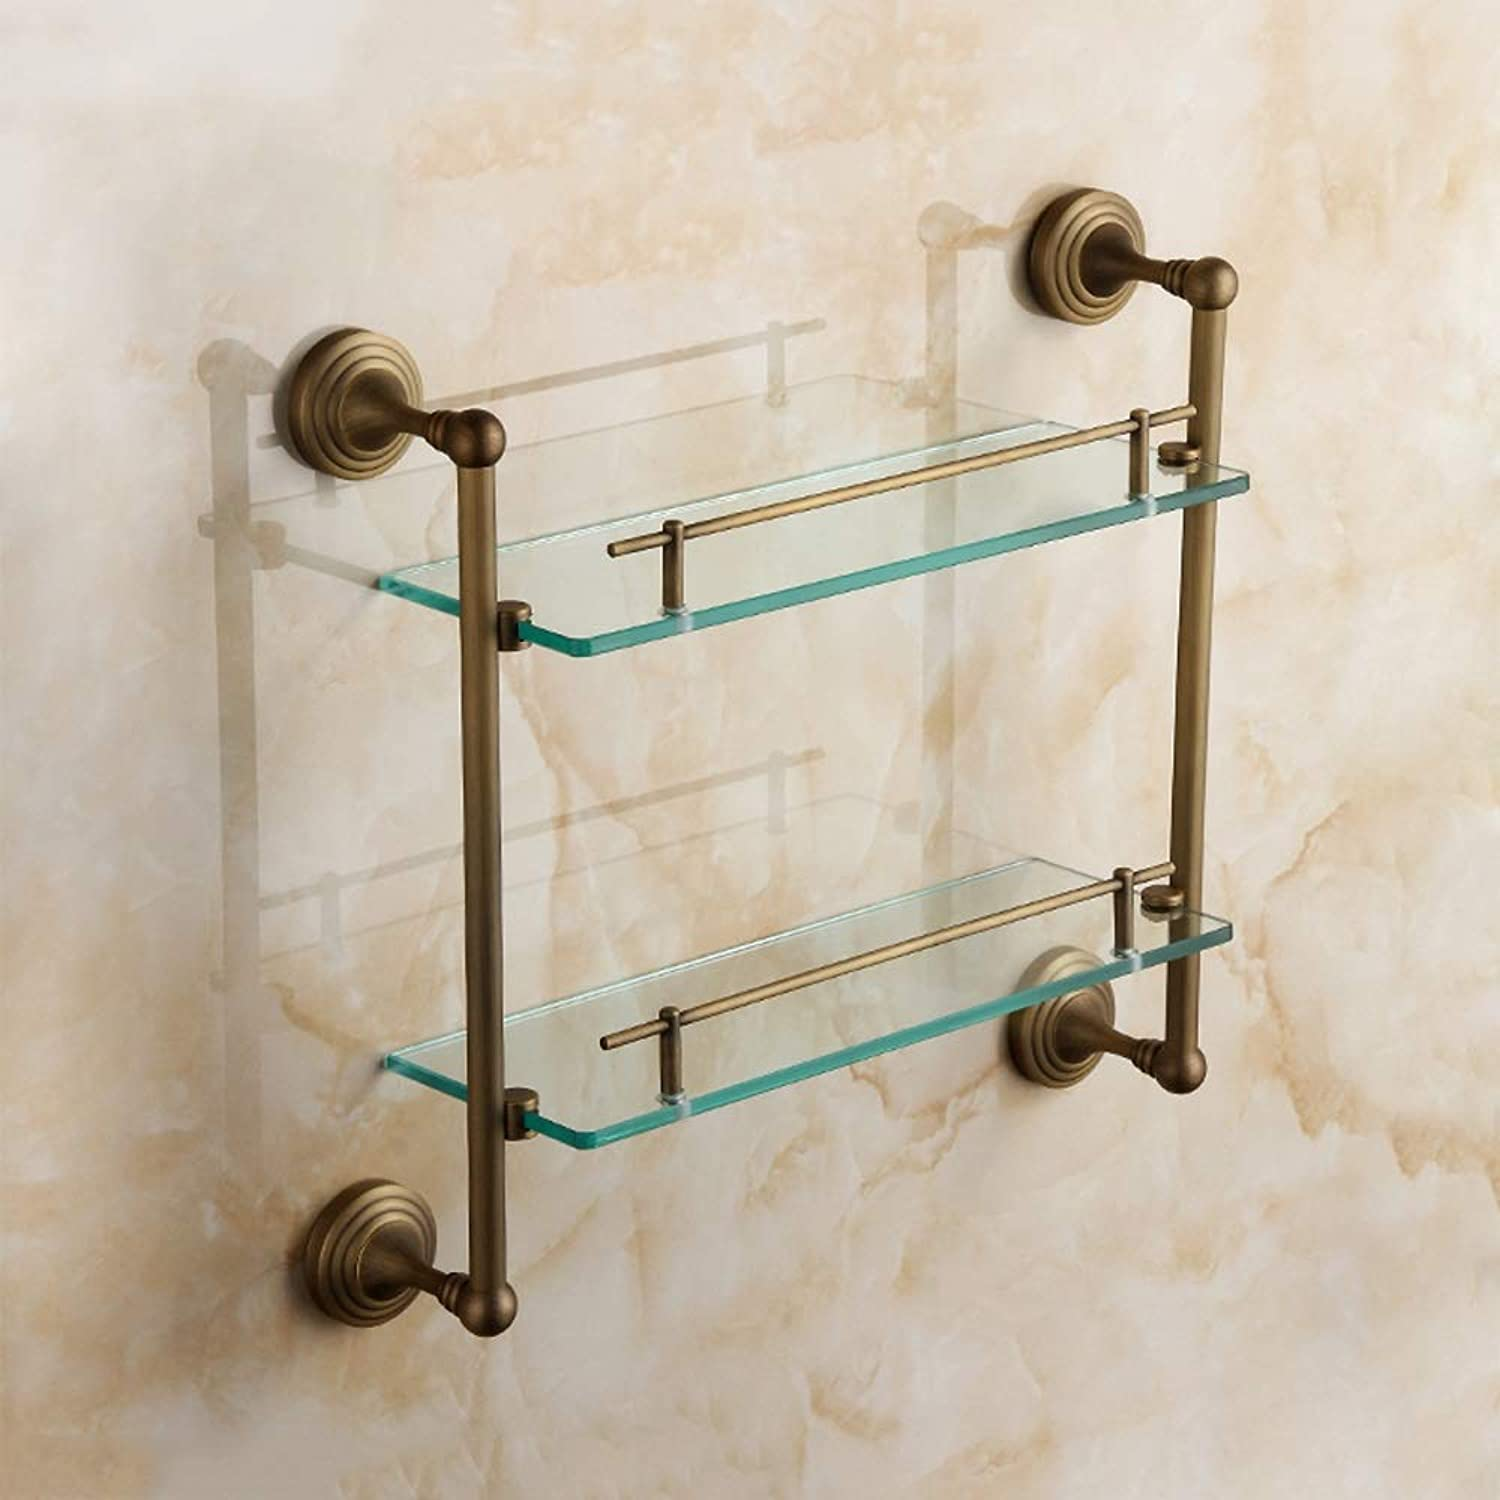 CHQW Trade Retro Bathroom Item Storage Rack Thickened Glass Partition Bathroom Hardware Pendant Copper Double Layer Shelf Heavy Wall-Mounted Glass Bracket Copper Wire Drawing